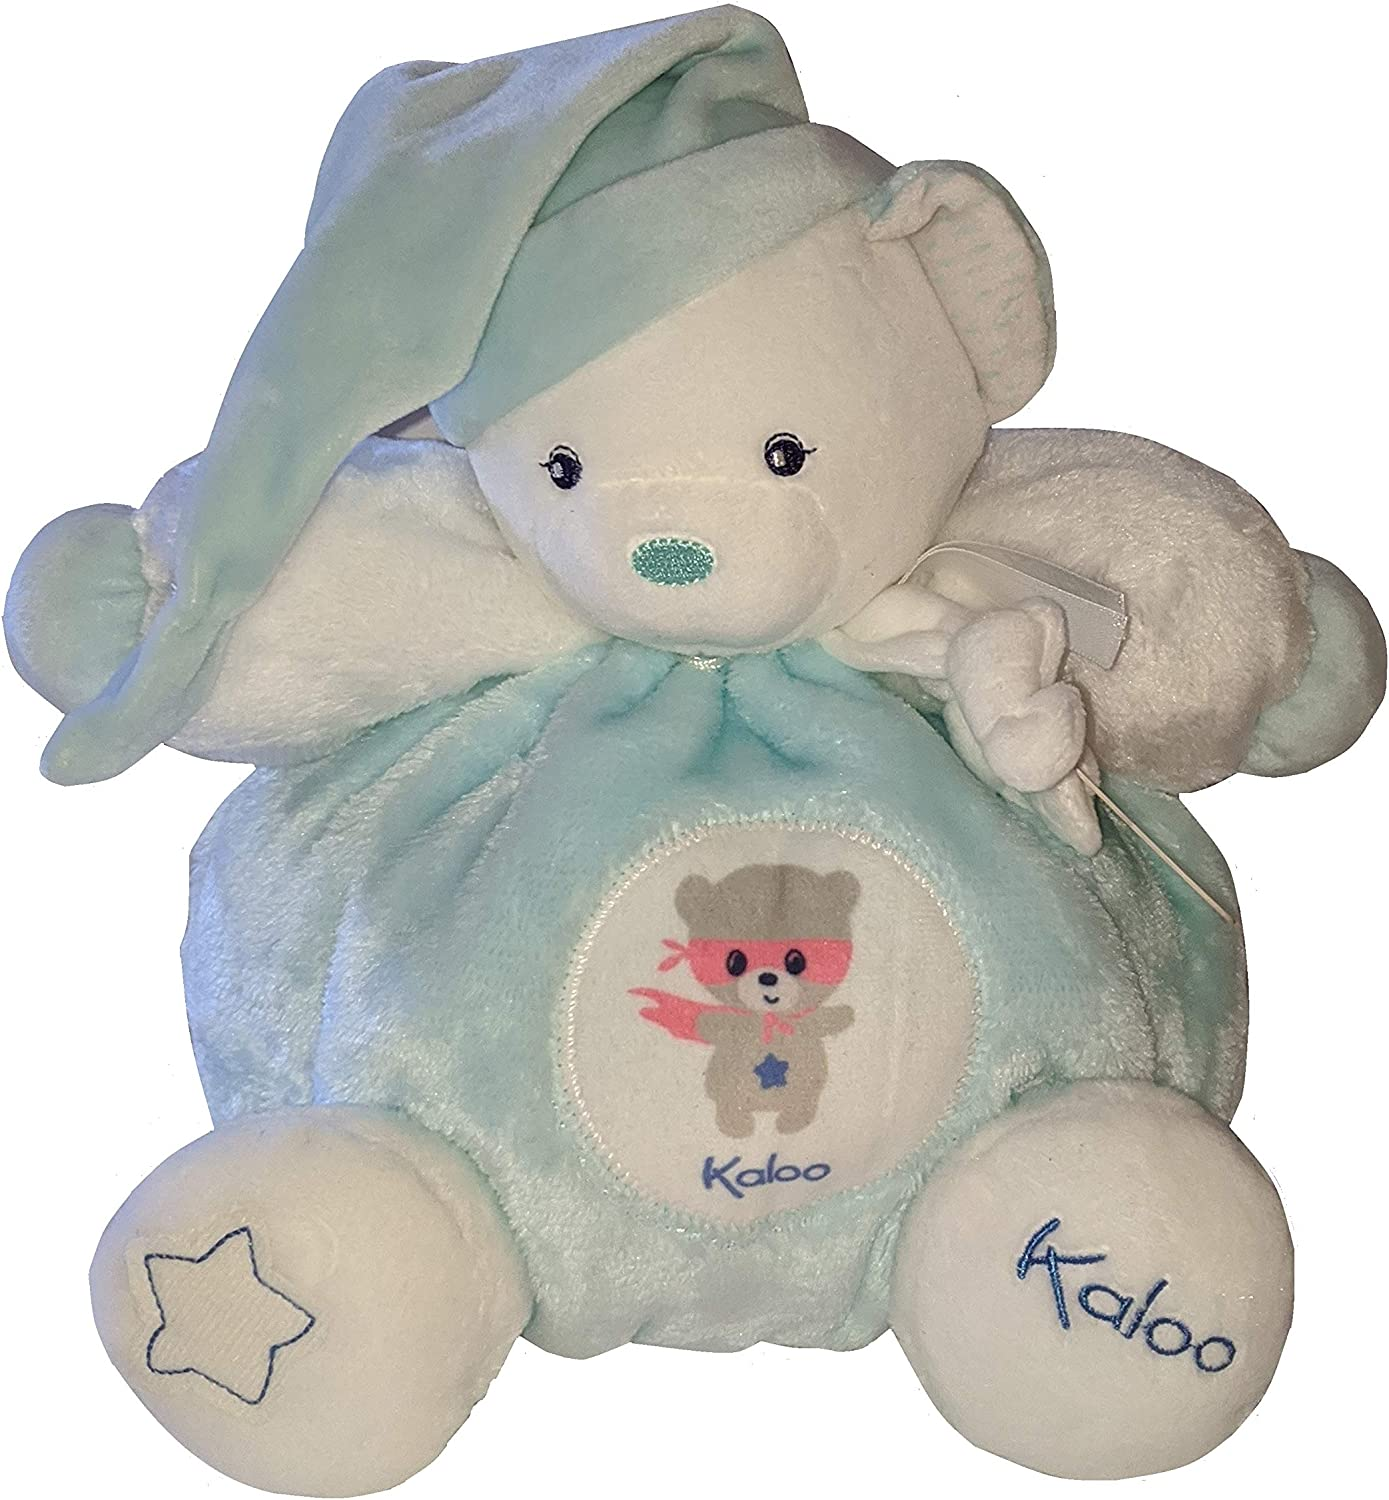 Onesie, Pant, Body Suit, and Hat Twinkle Twinkle Little Star and Little Prince Nursery Clock Beautiful Baby Boy Gift Basket with Large Kaloo Chubby Bear Cuddly Baby Gift Basket 4 Piece Newborn Set Plush Blanket